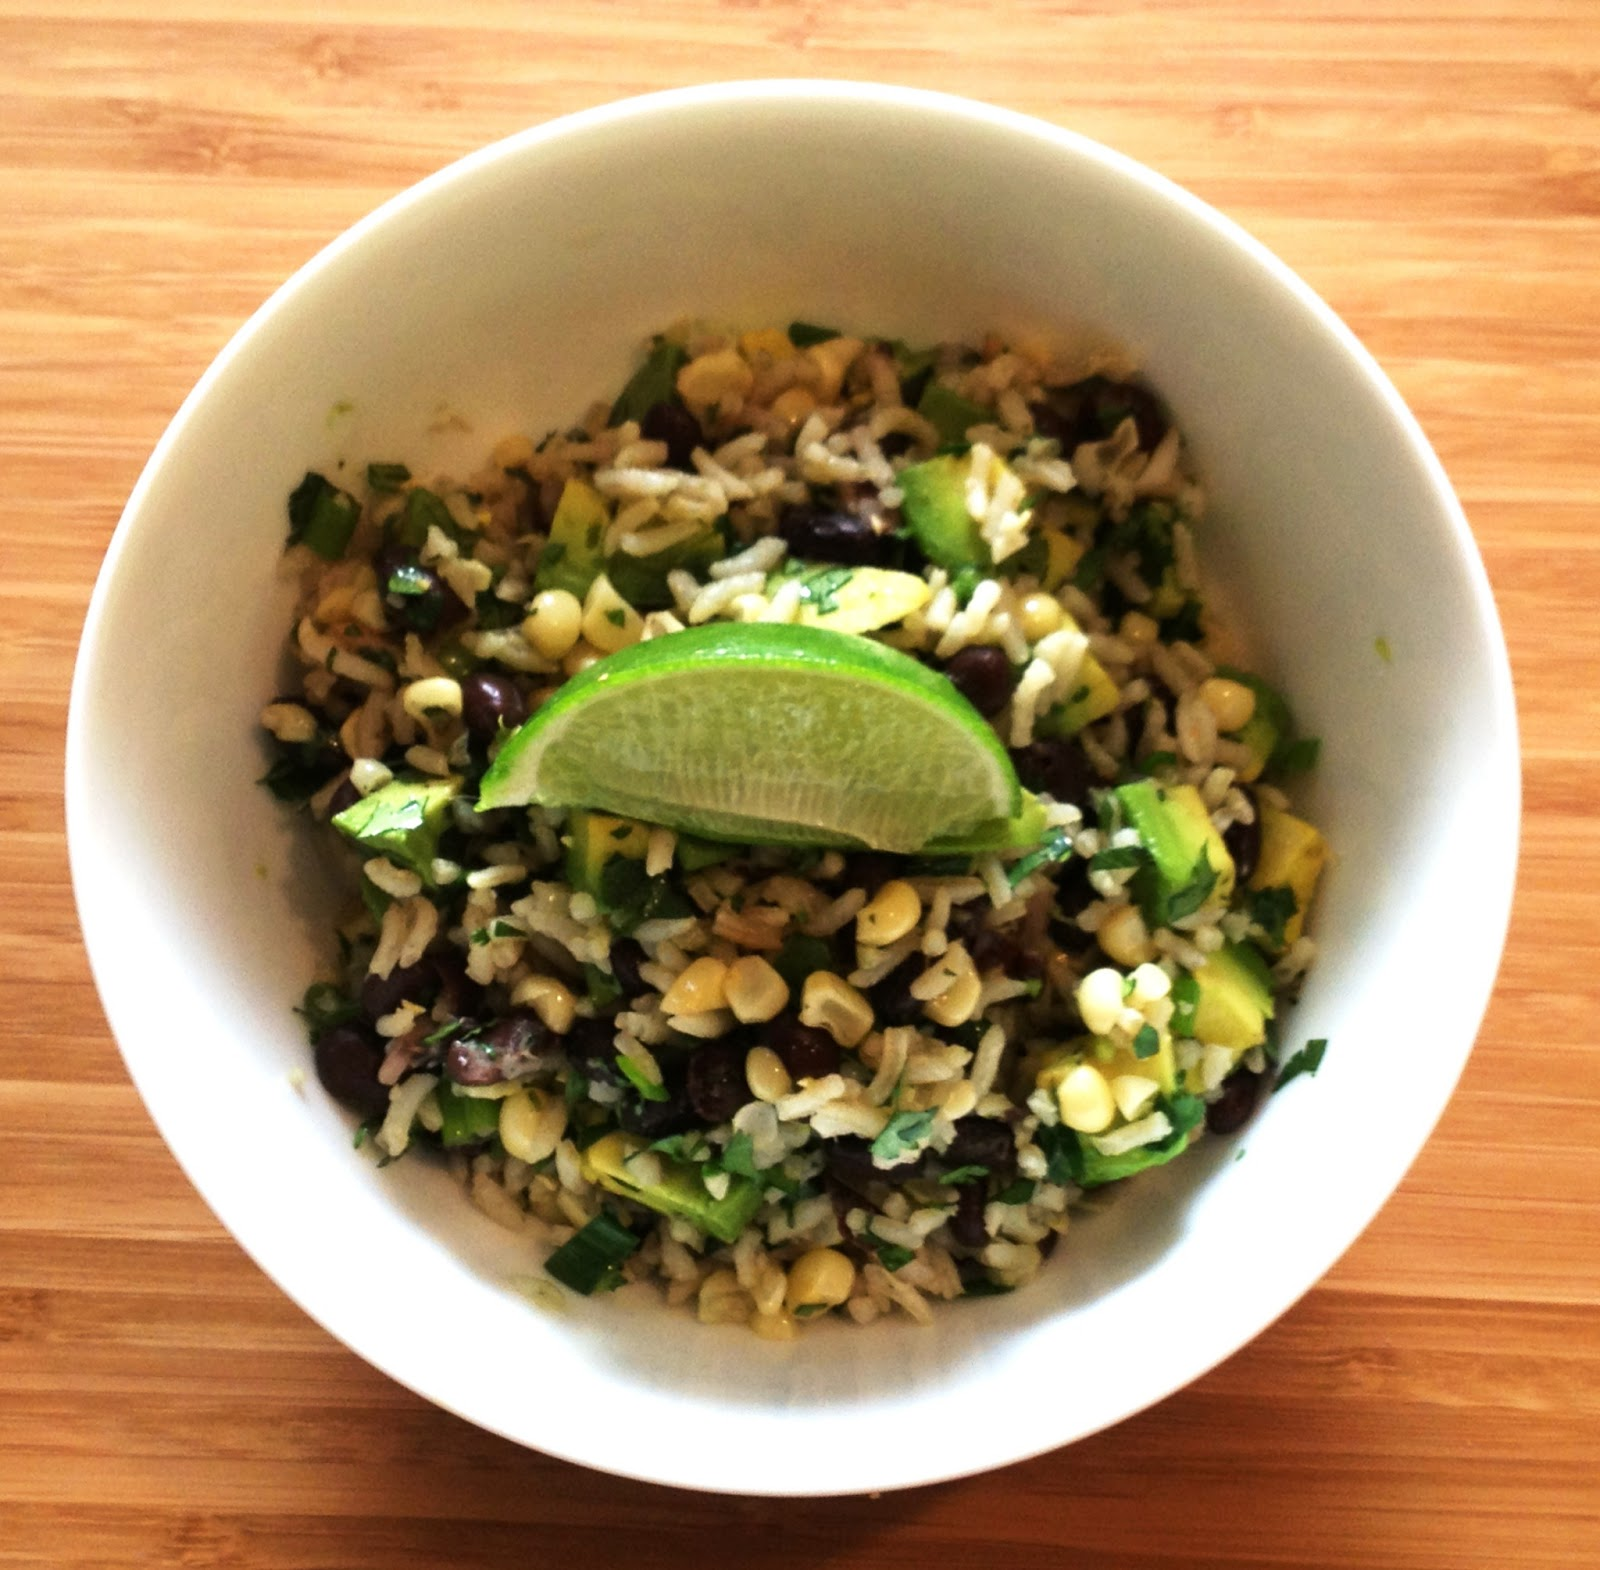 ... Sensitive Epicure: Cilantro Rice with Corn, Black Beans, and Avocados